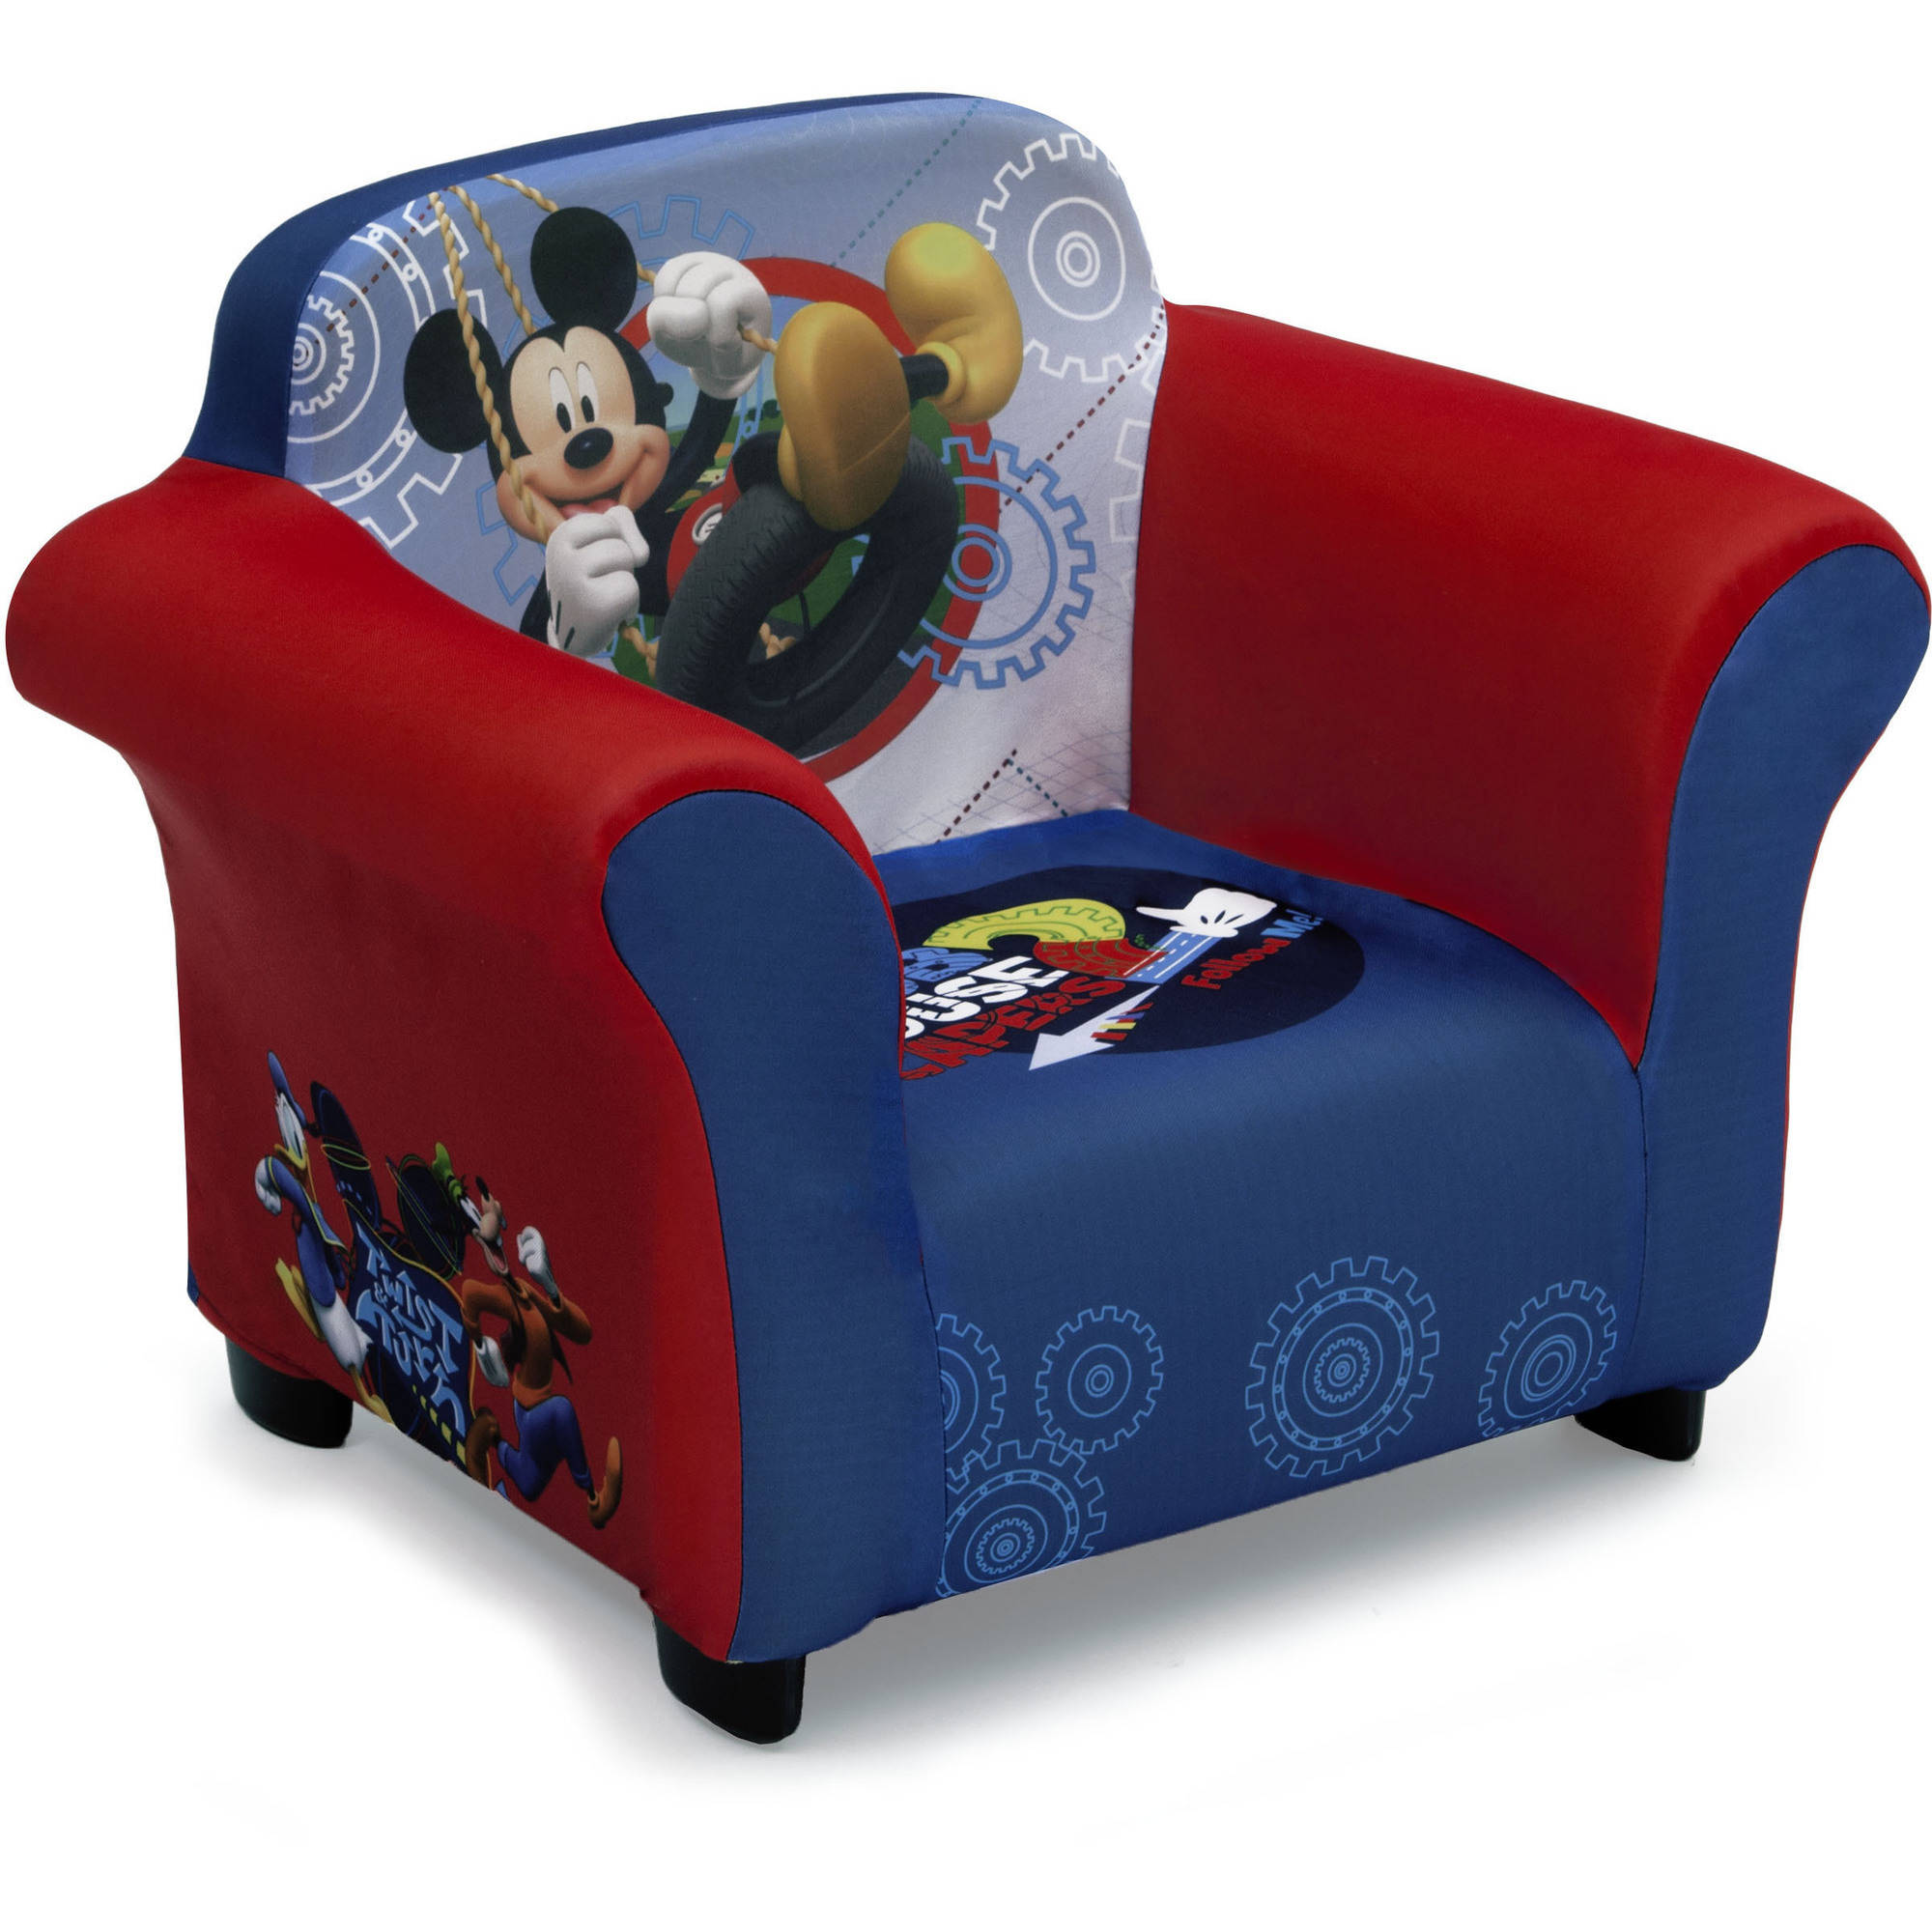 Mickey Mouse Chairs For Toddlers Disney Mickey Mouse Kids Upholstered Chair With Sculpted Plastic Frame By Delta Children